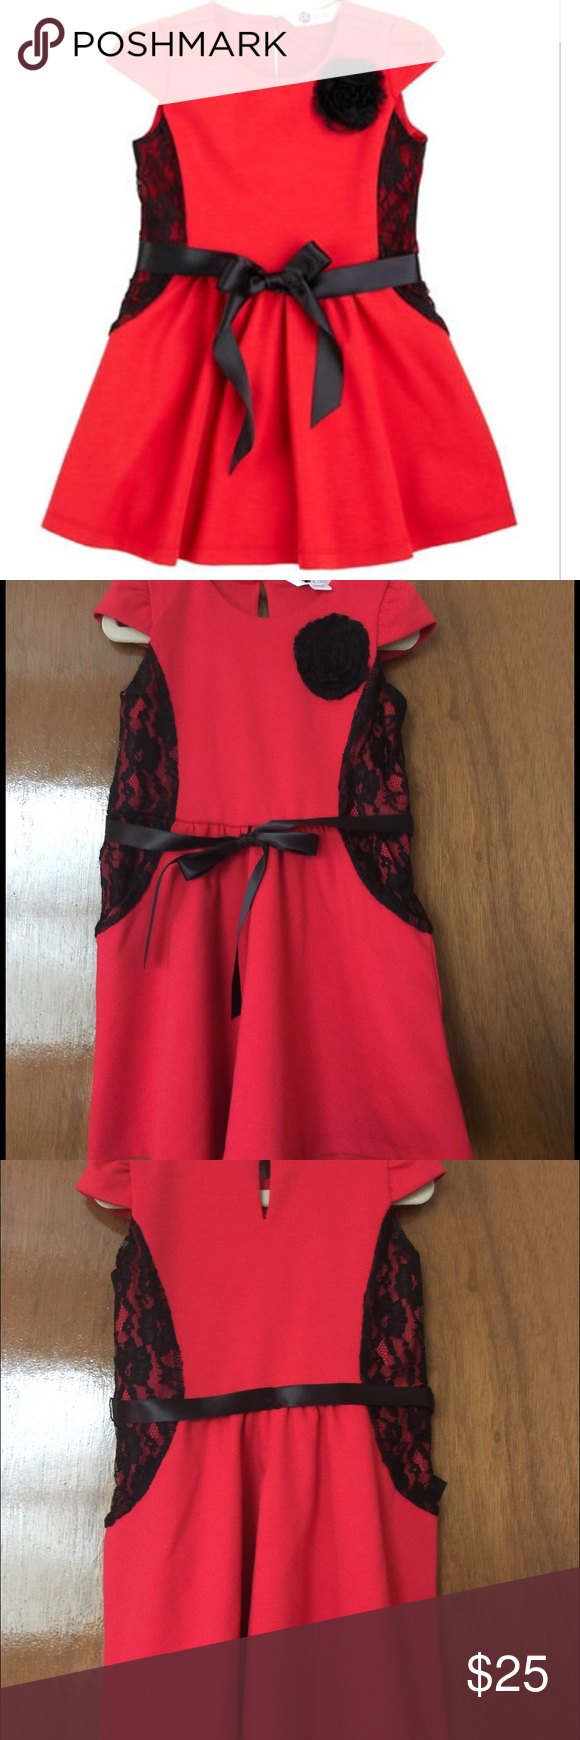 Petit lem toddler girl lace red black dress brand new with tags